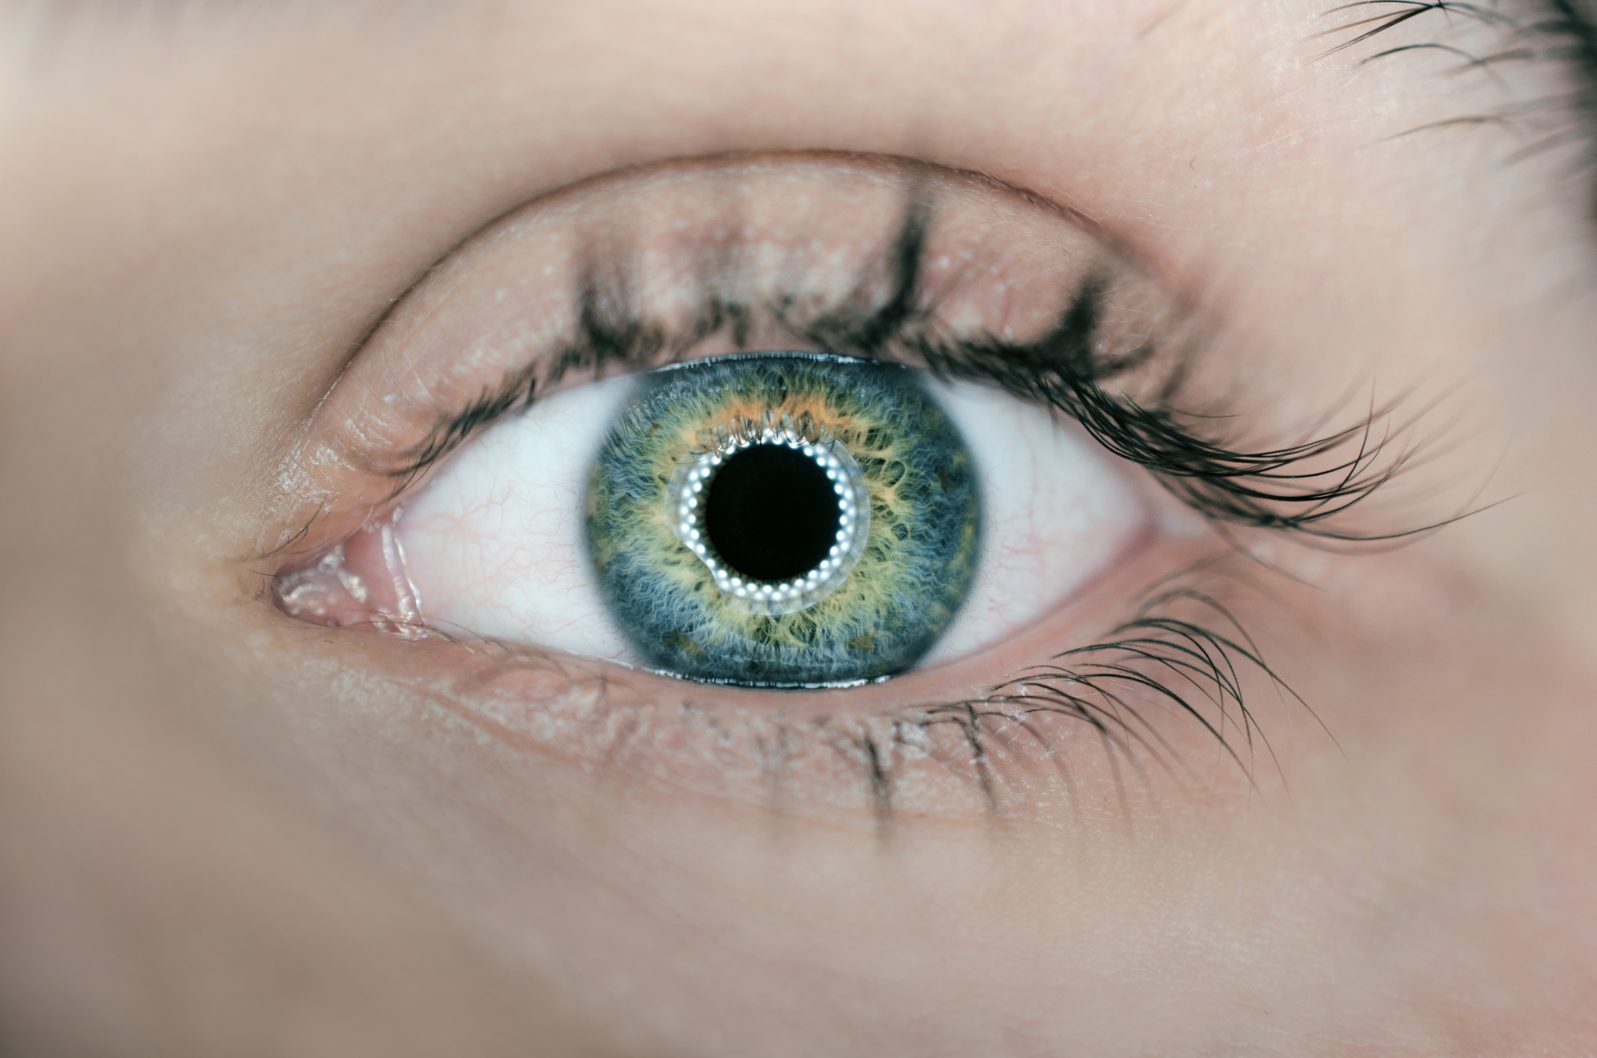 Eyeball with ring light reflection in pupil